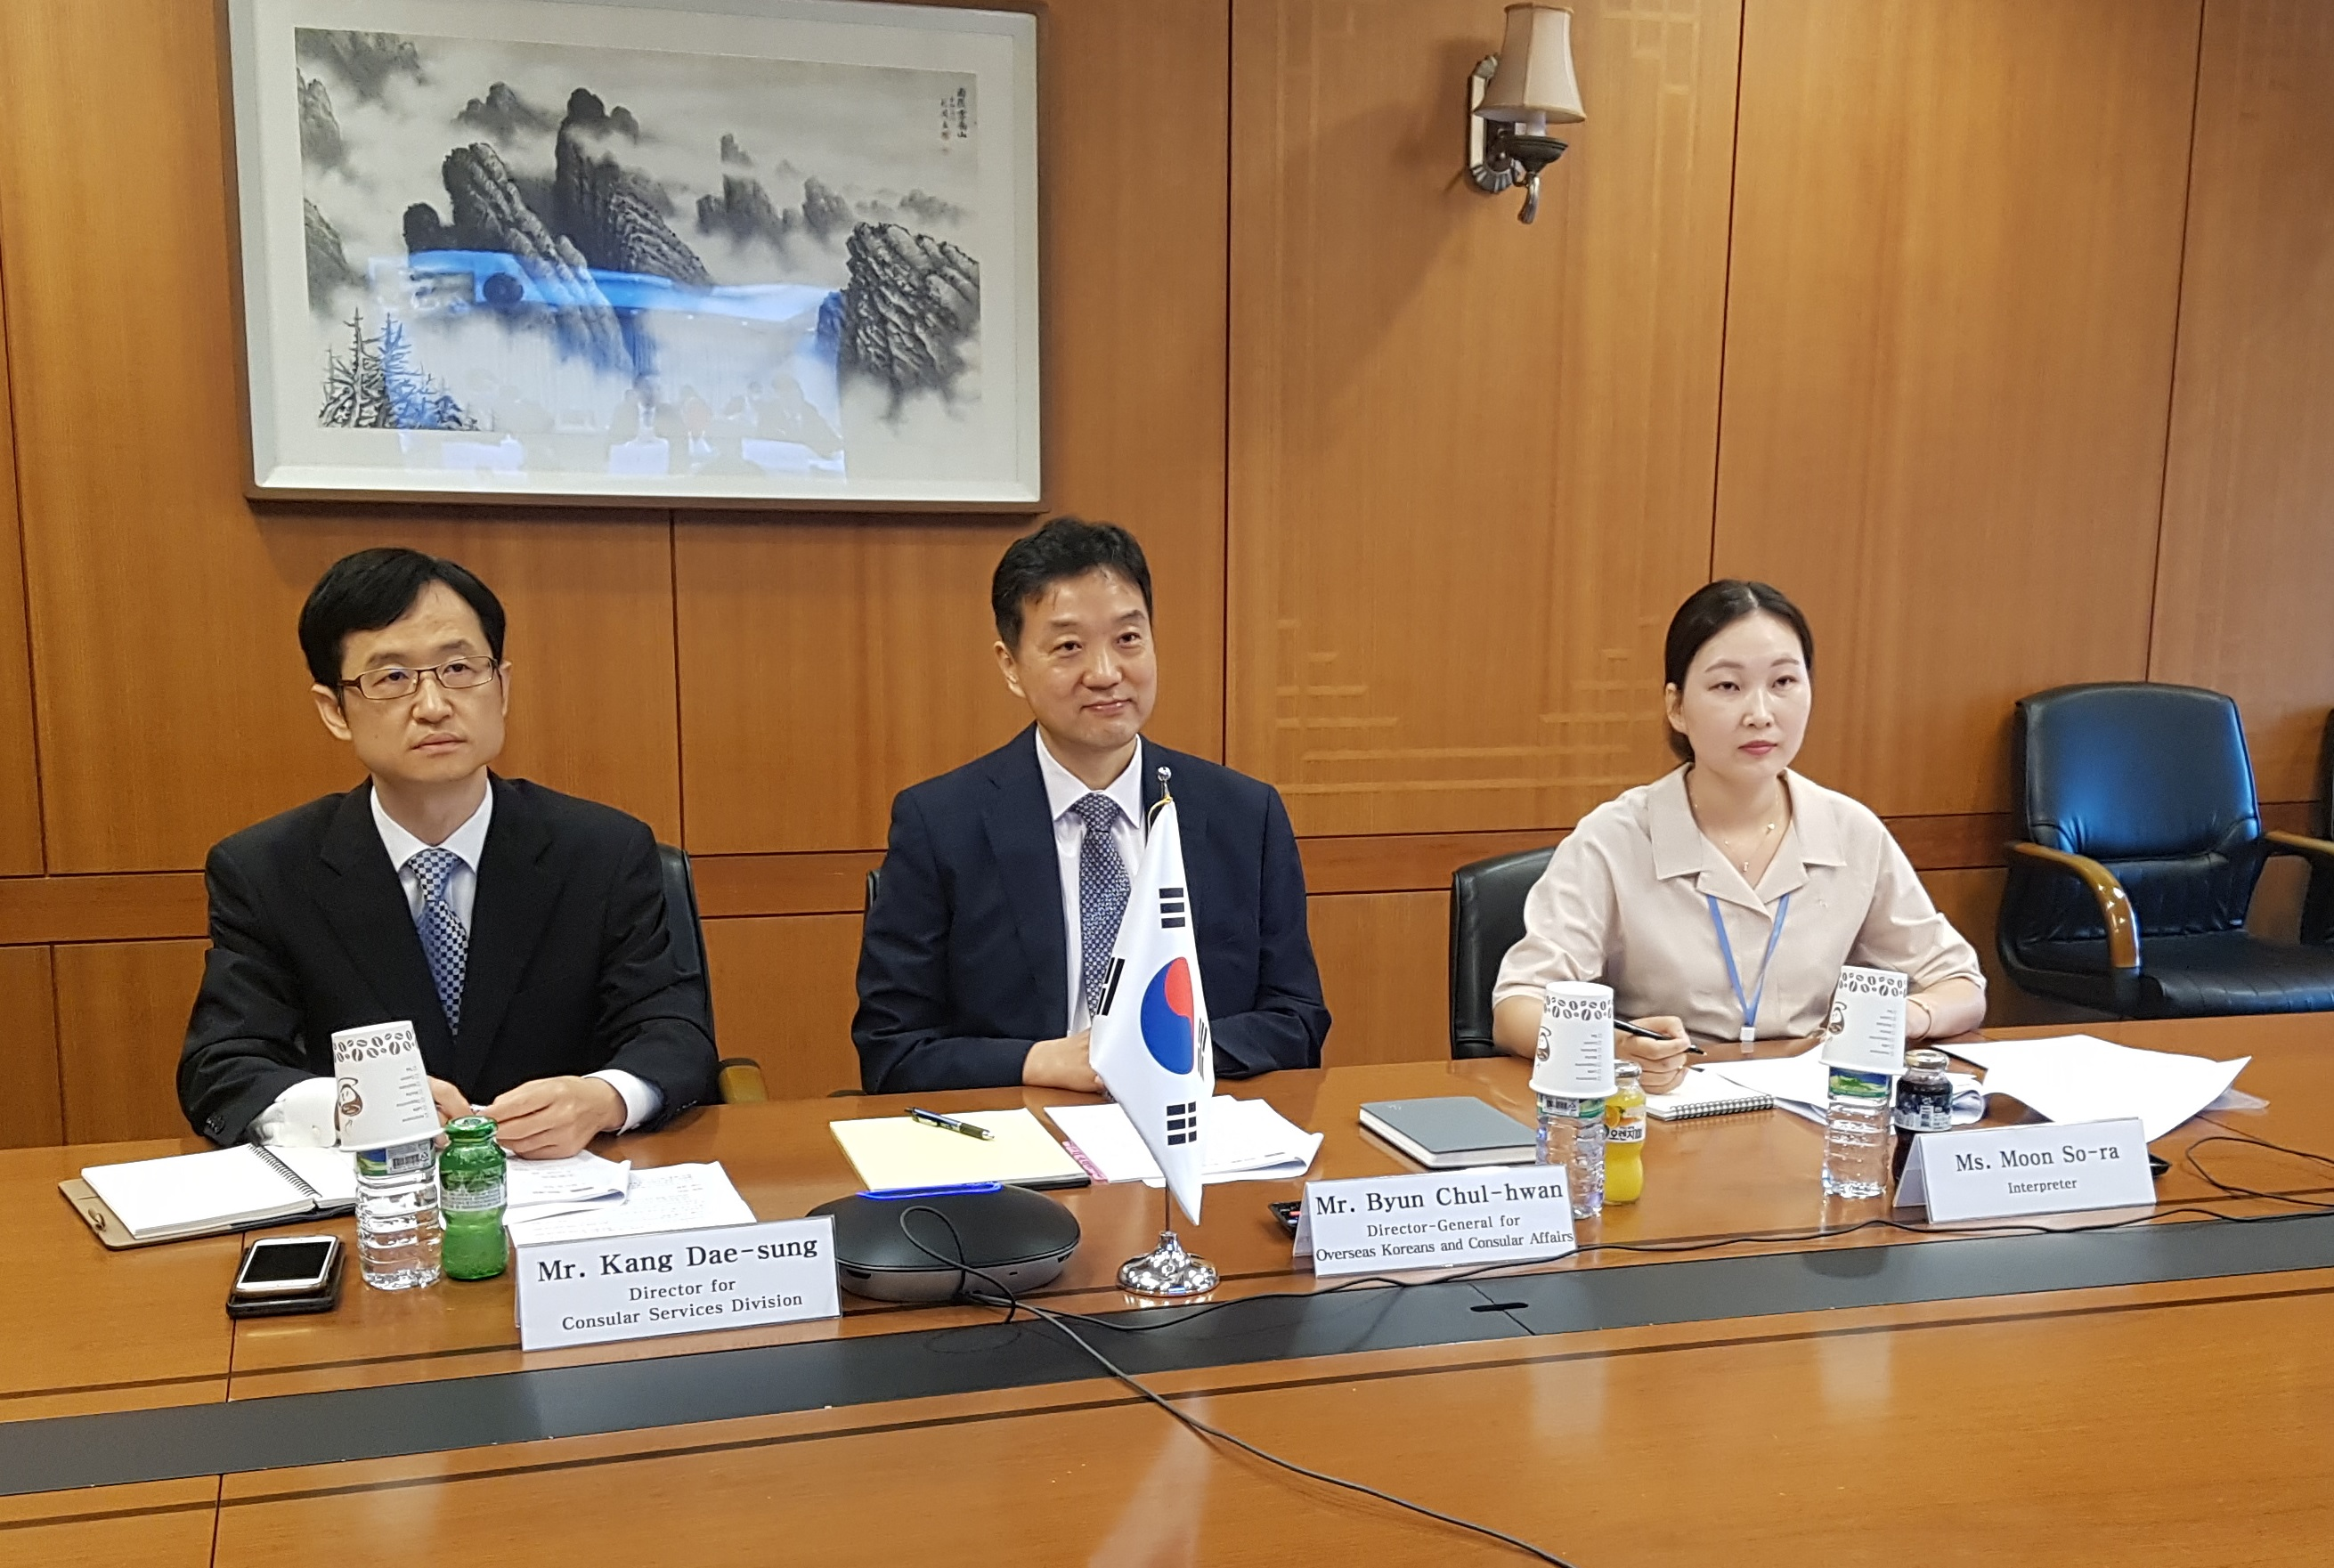 Video Conference Takes Place between ROK and Chinese Directors-General for Consular Affairs